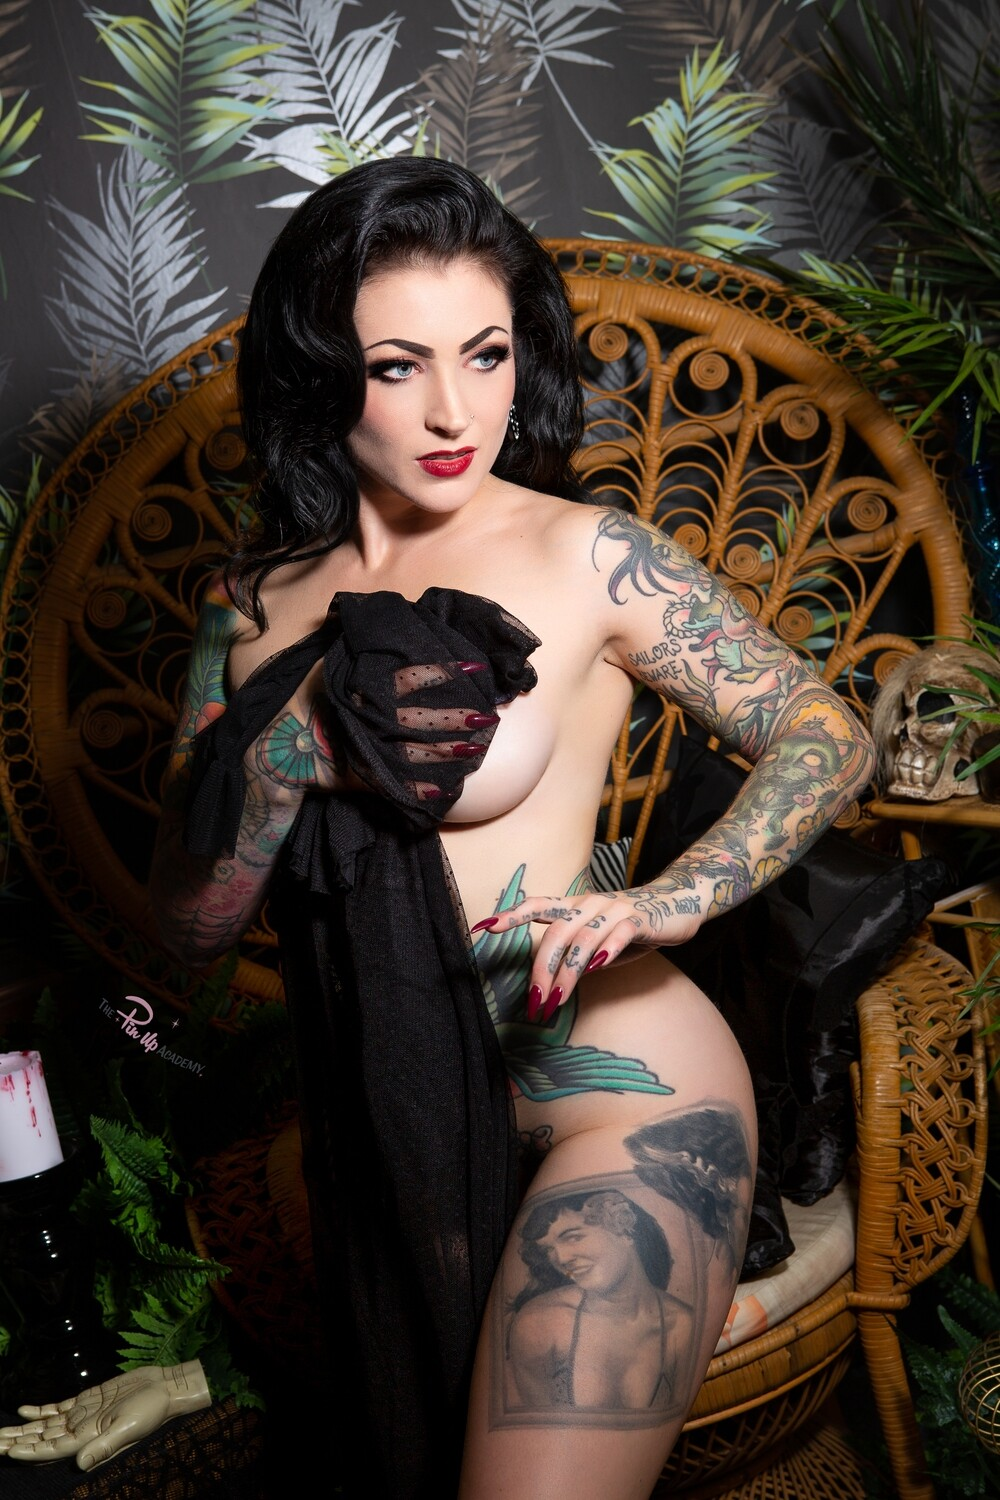 Lola Diamond Dark Pinup